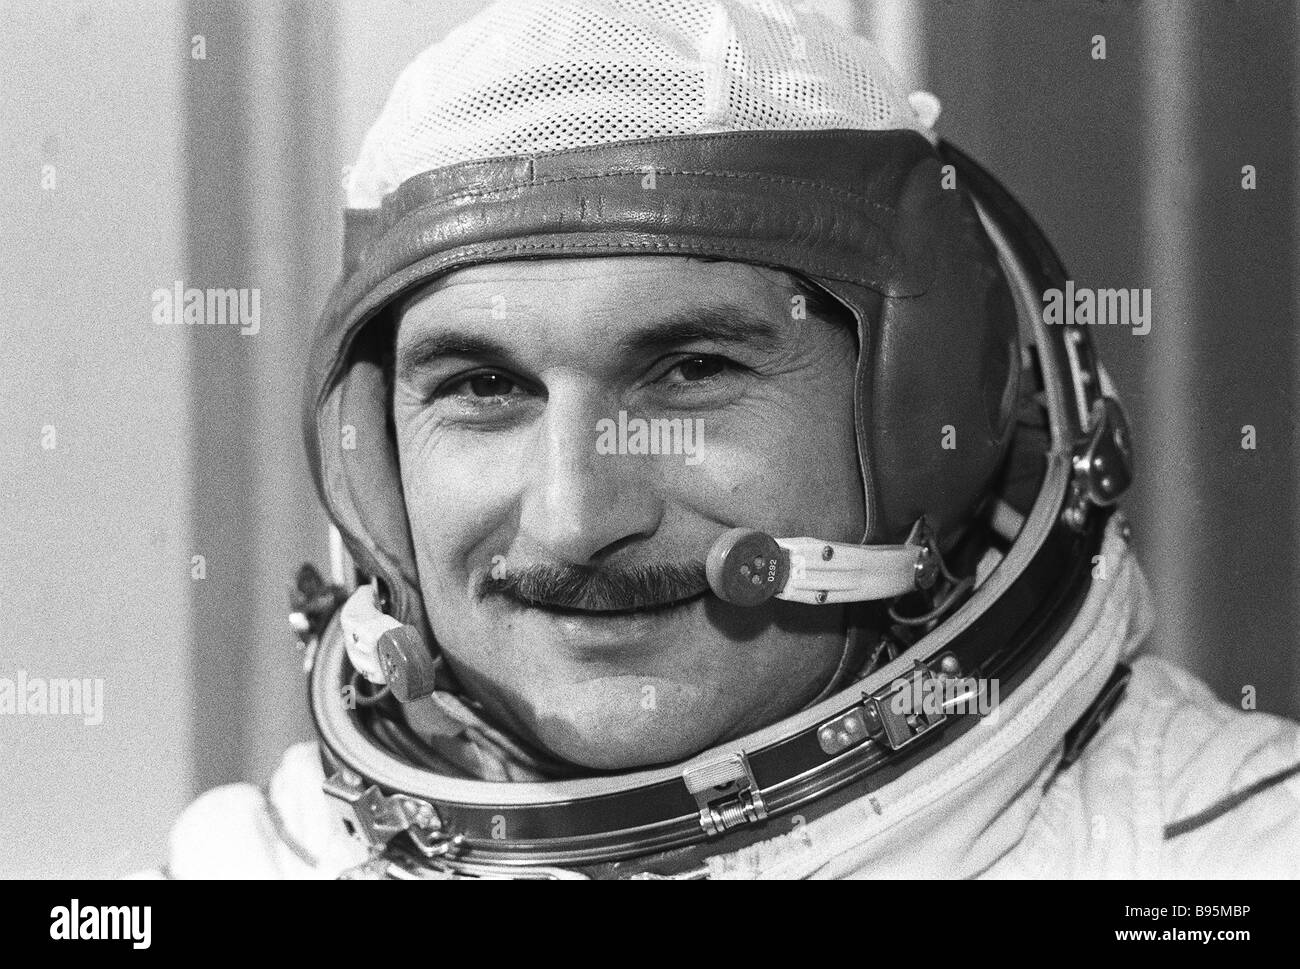 On July 6 -- August 24, 1976, Pilot-Cosmonaut of the USSR, Hero of the Soviet Union and flight engineer Vitaly Zholobov - Stock Image